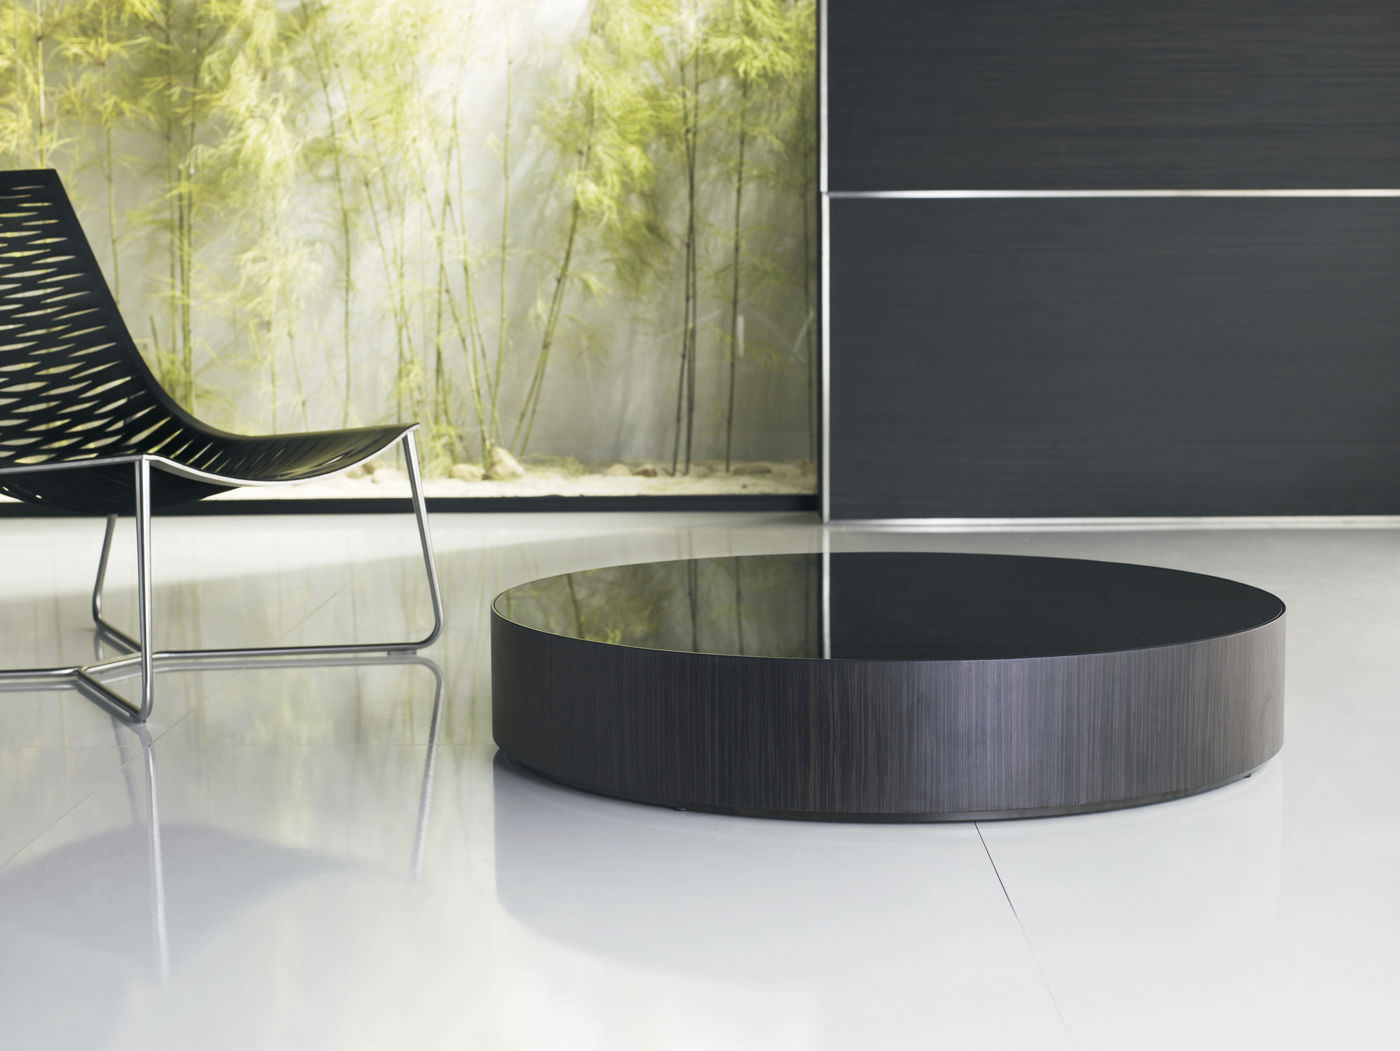 contemporary coffee table  glass  round  berkeley in  - contemporary coffee table  glass  round  berkeley in berkeley in